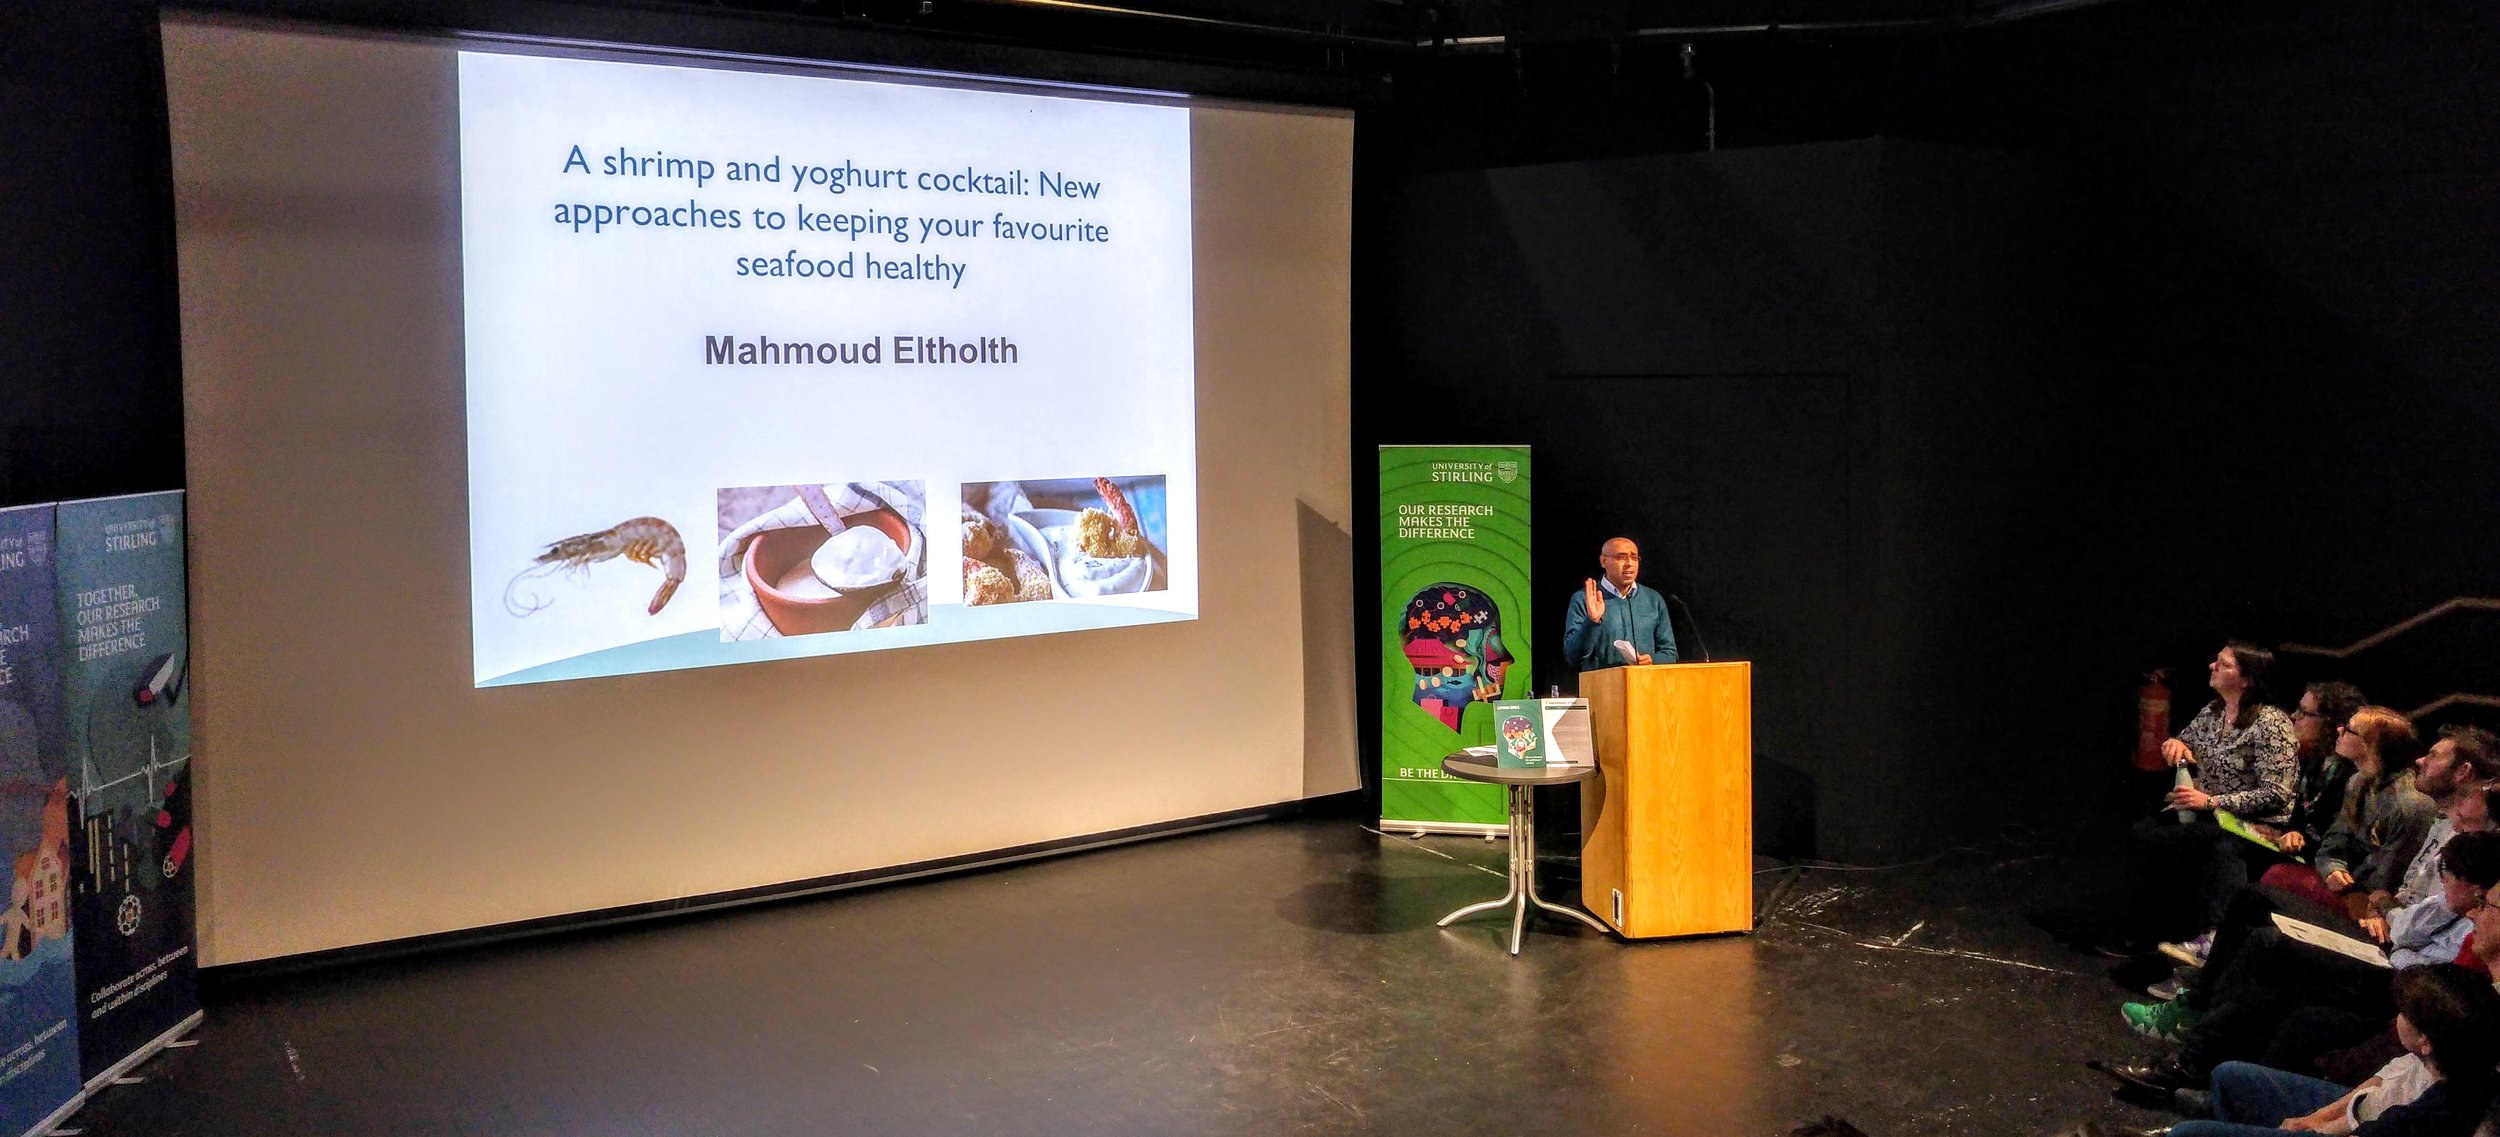 Mahmoud Eltholth introducing the IMAQulate project and initial findings